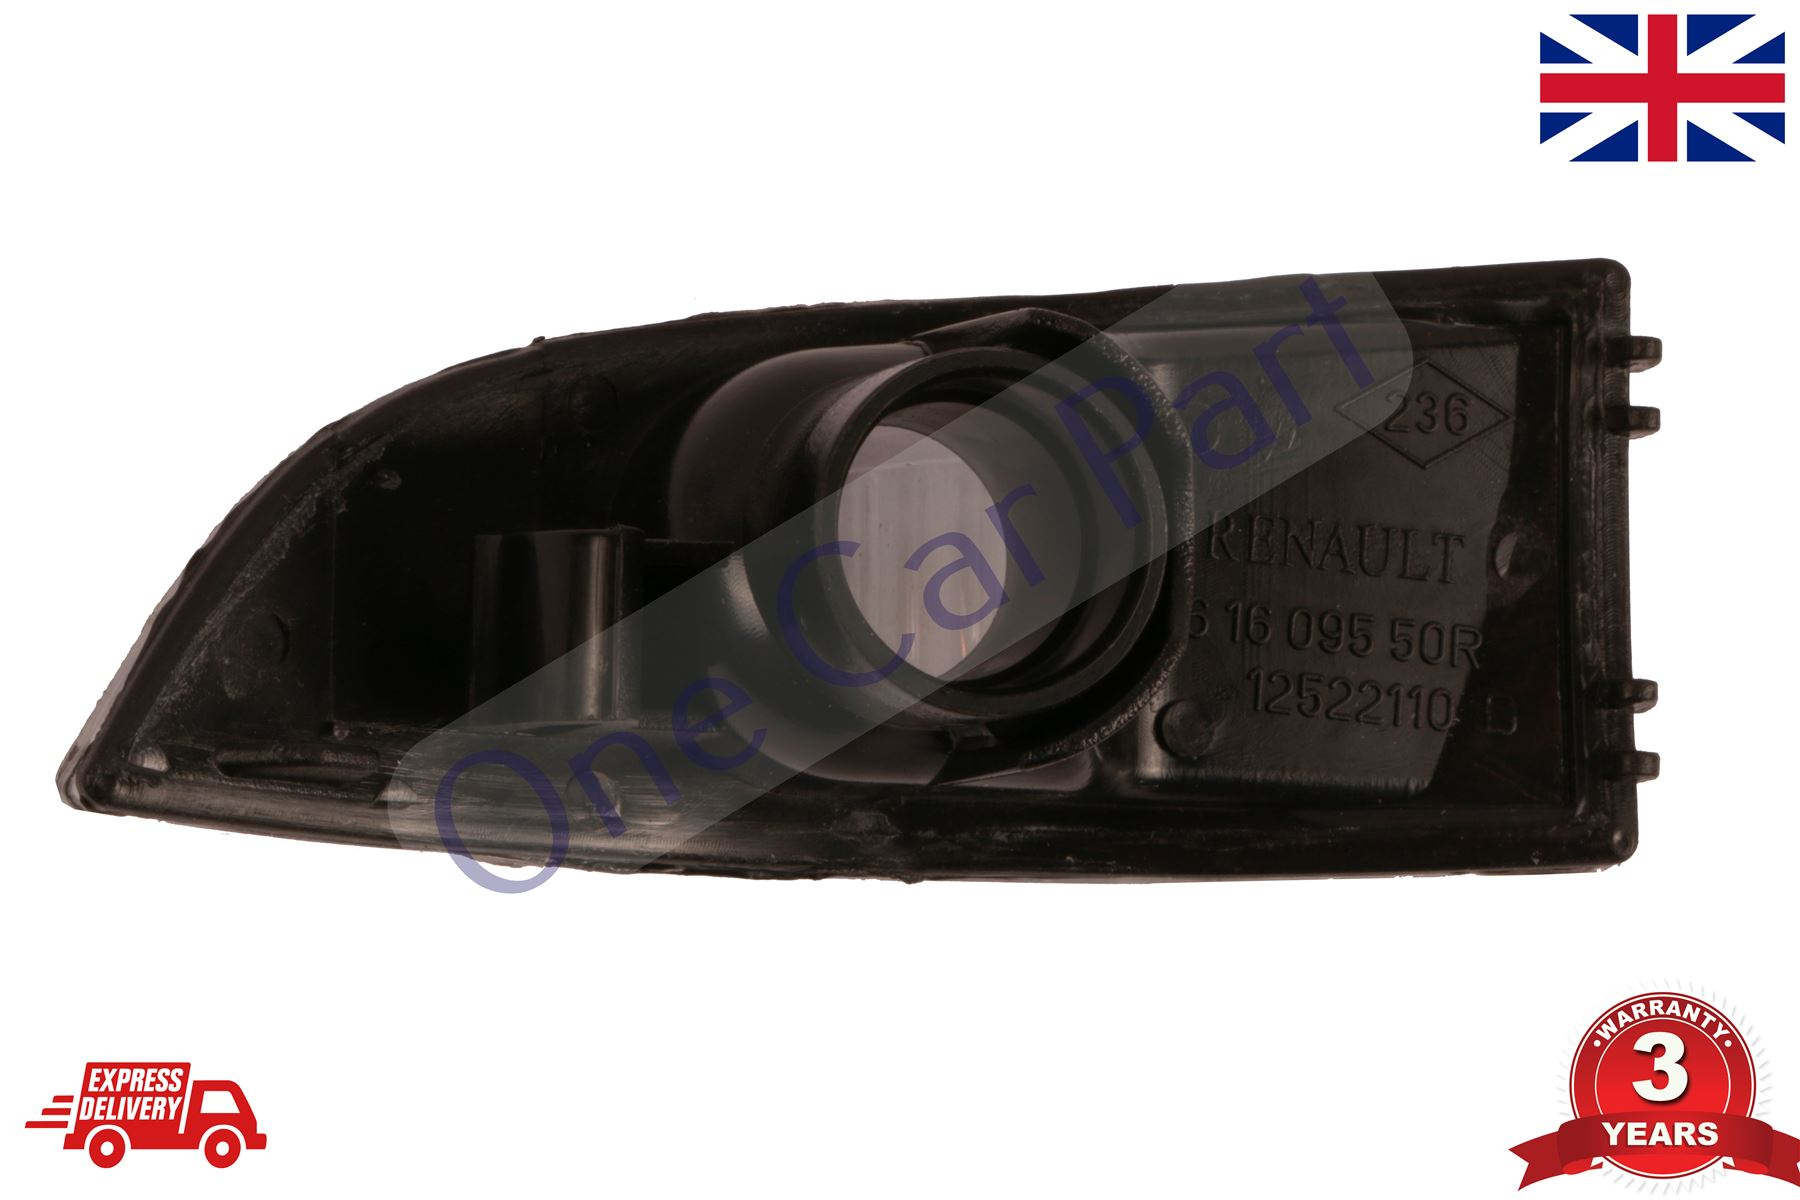 Left Side Wing Mirror Indicator Lamp for Grand Scenic//Scenic 2009-2015 261650002R 261656470R